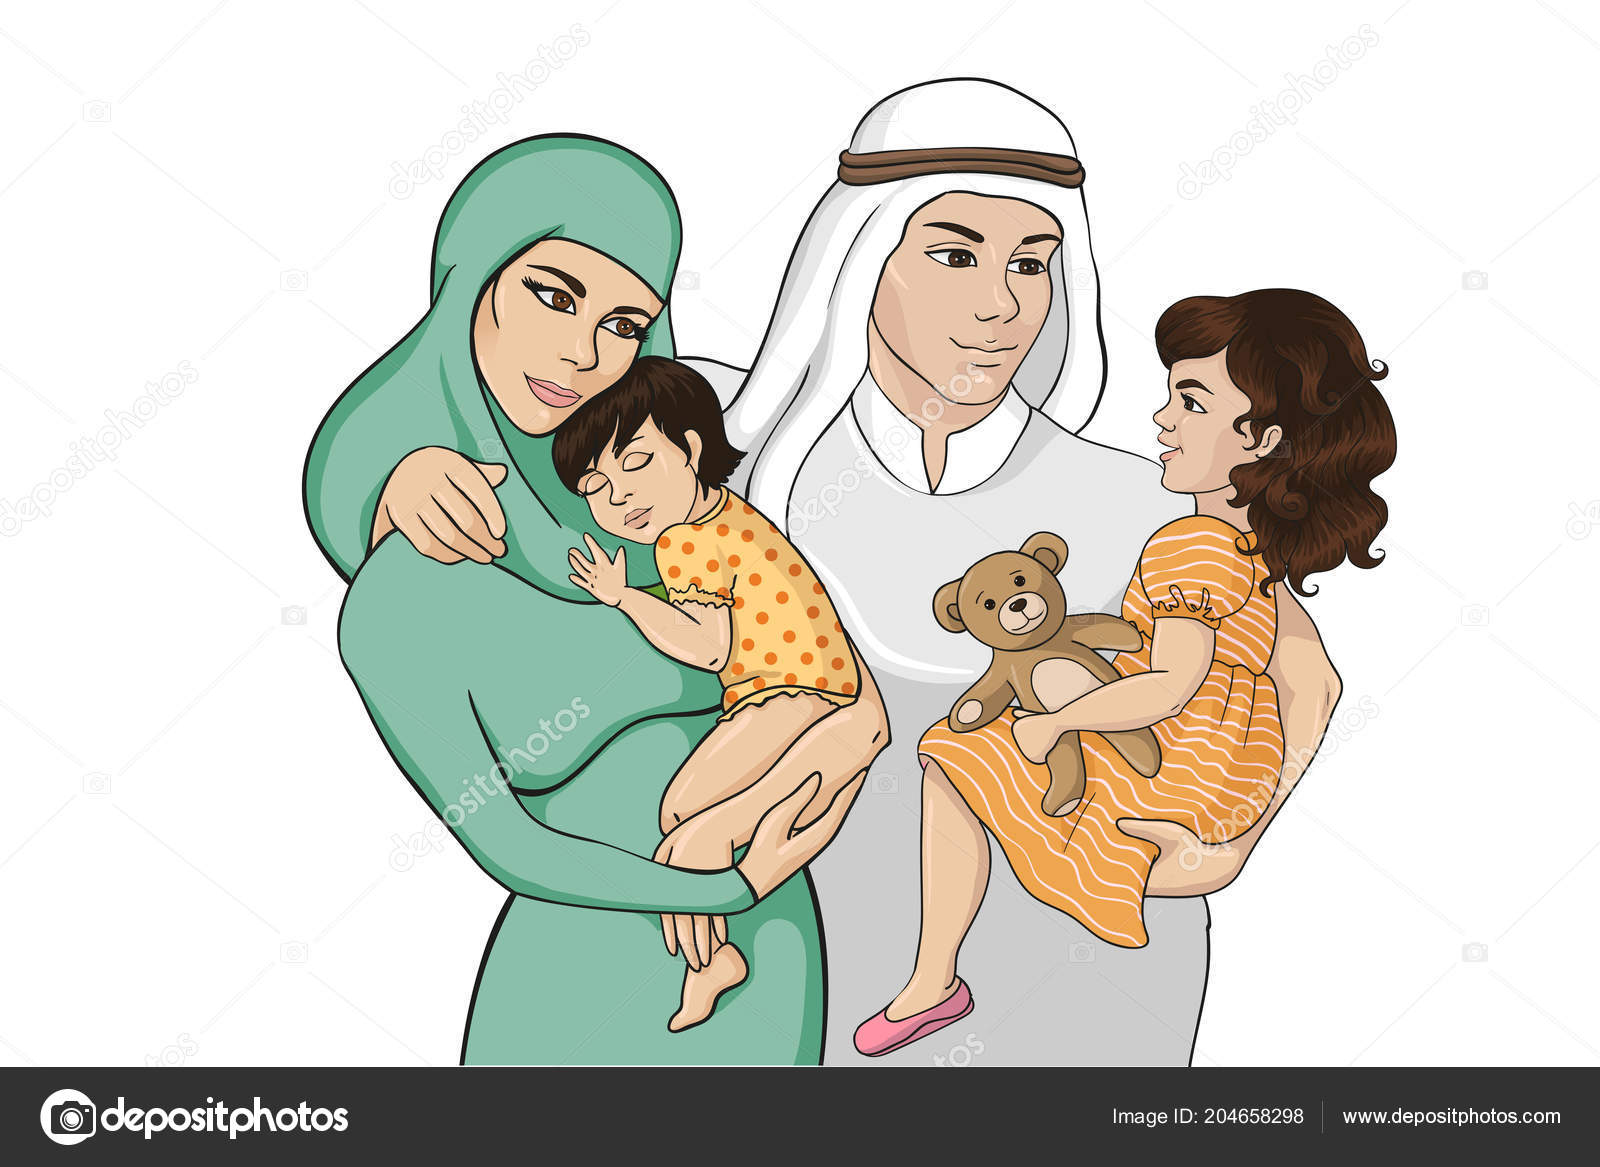 Cartoon Muslim Mother Stock Vectors Royalty Free Cartoon Muslim Mother Illustrations Page 2 Depositphotos